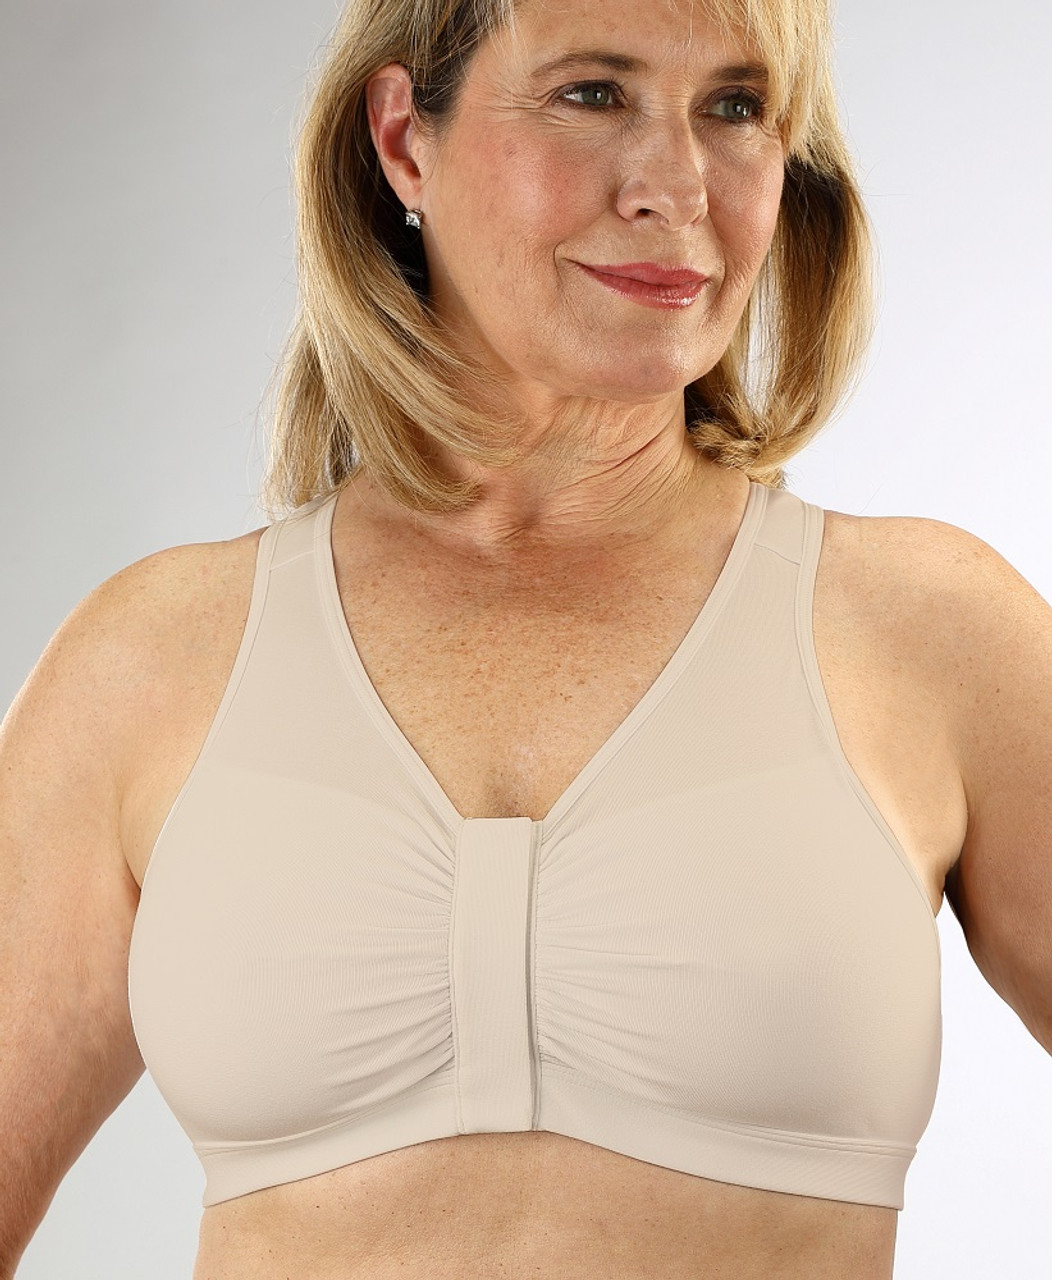 595fb9dc2e0 Front Closure- Seamless Cotton Bra with back support for sensitive skin